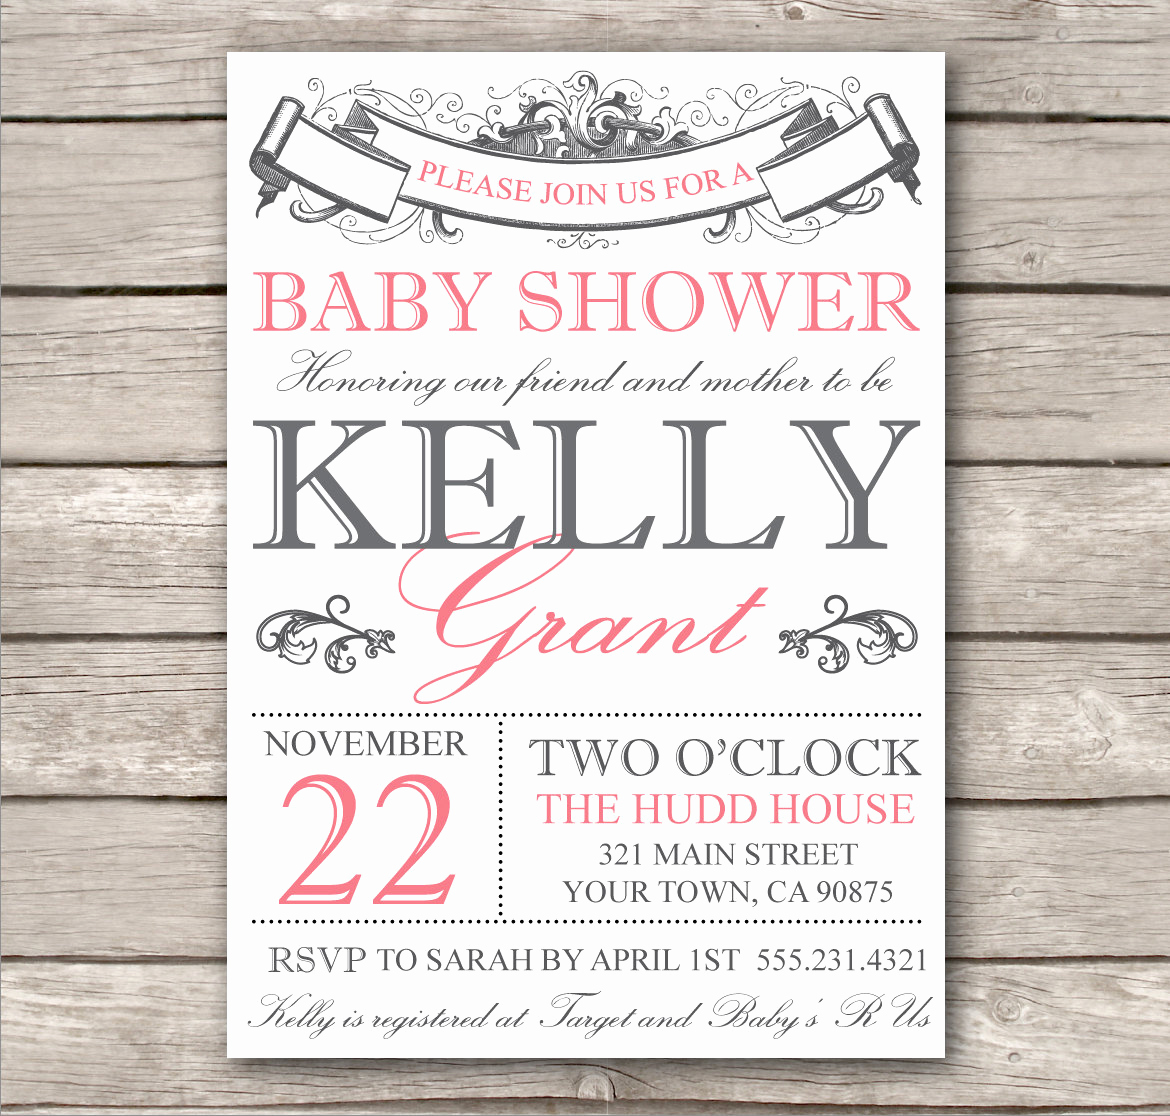 Free Bridal Shower Invitation Printables Luxury Bridal Shower Invitation or Baby Shower Invitation by